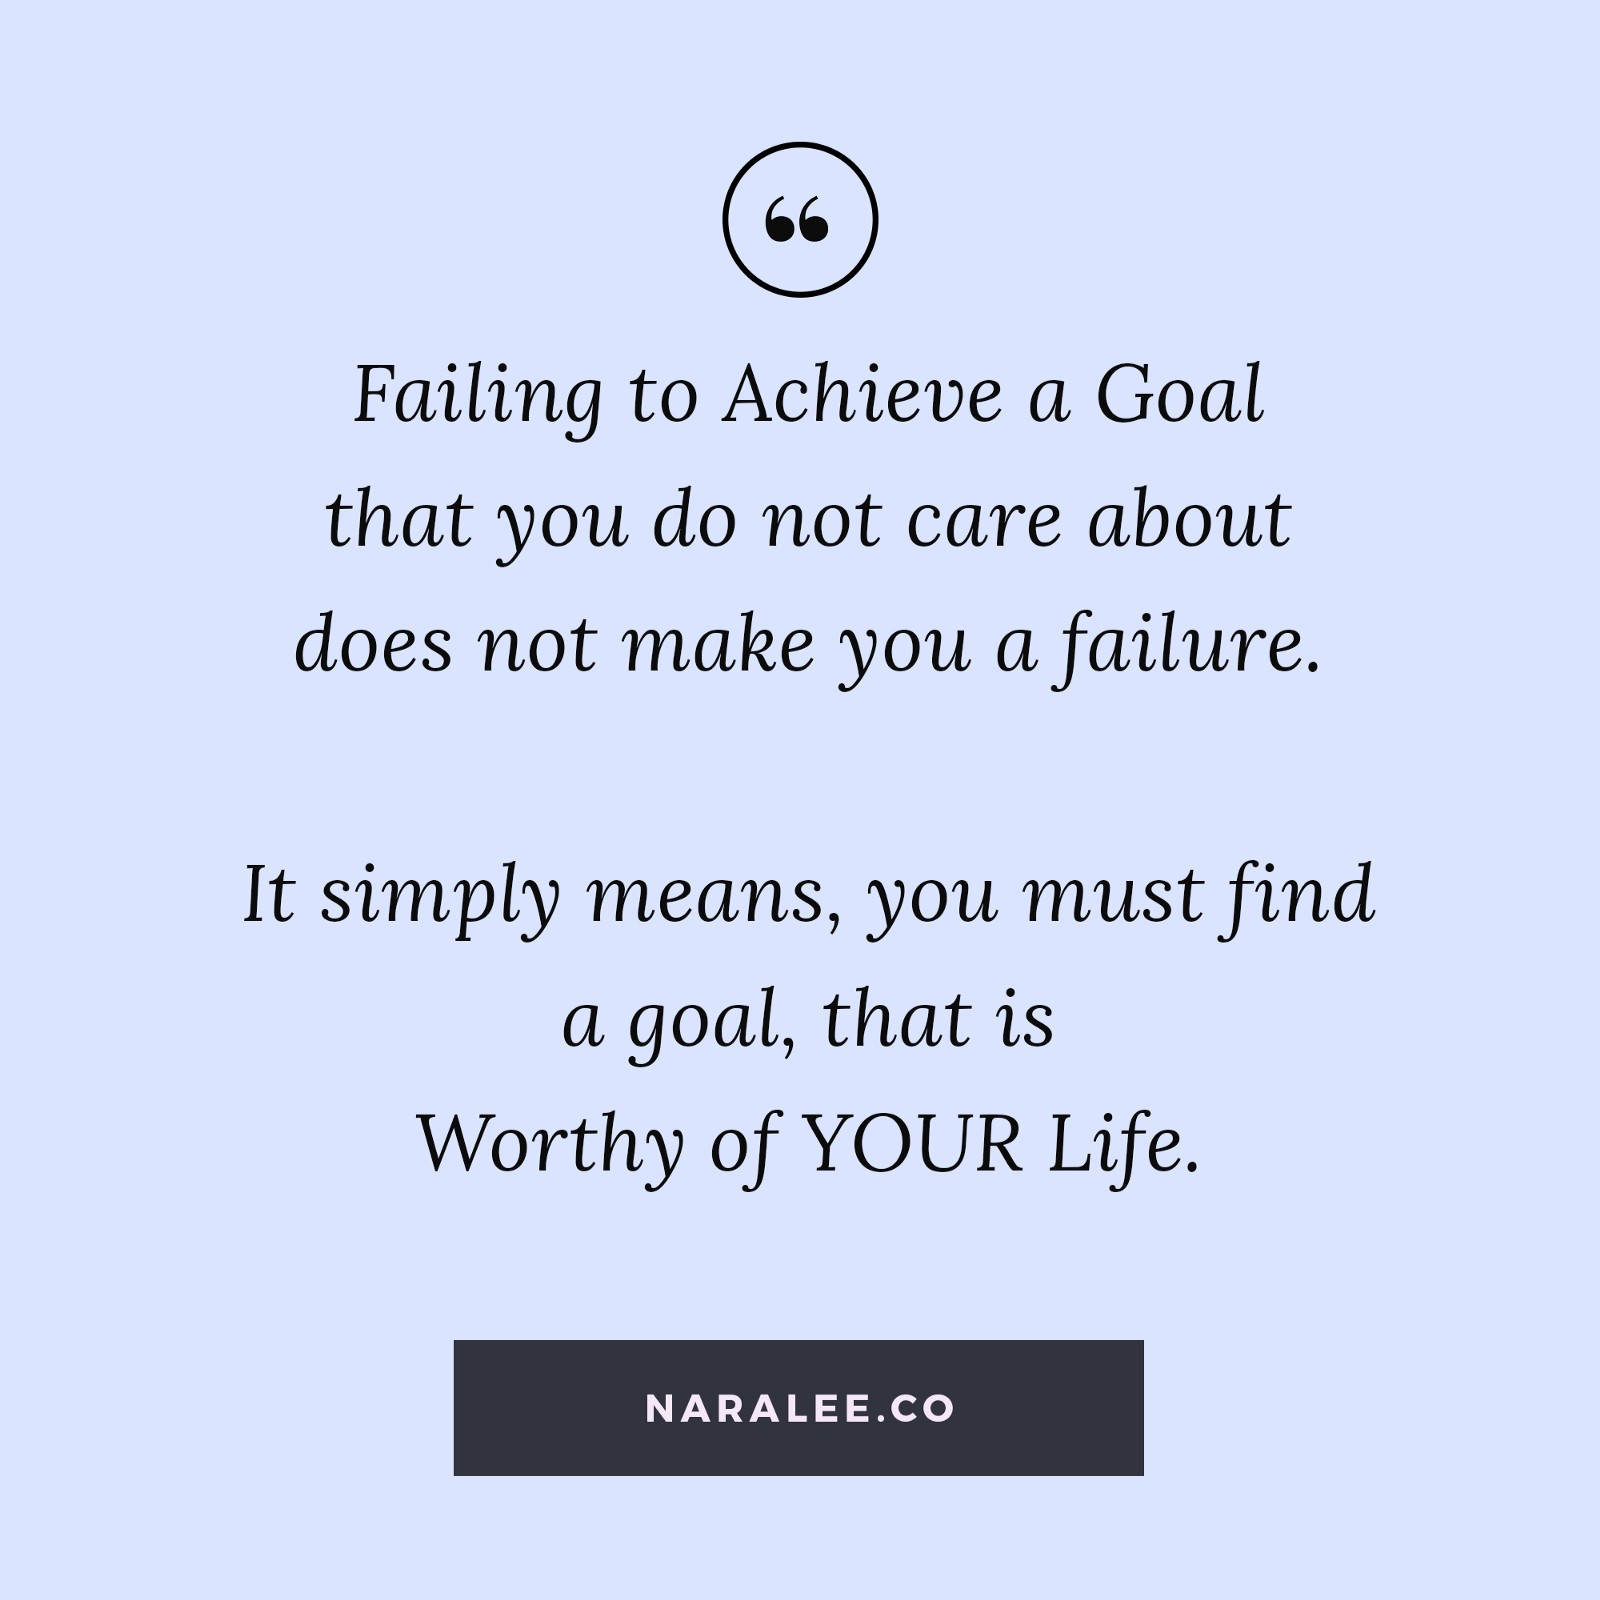 if a goal is worthy then any means taken it is justifiable If a goal is worthy, then any means taken to attain it are justifiable.